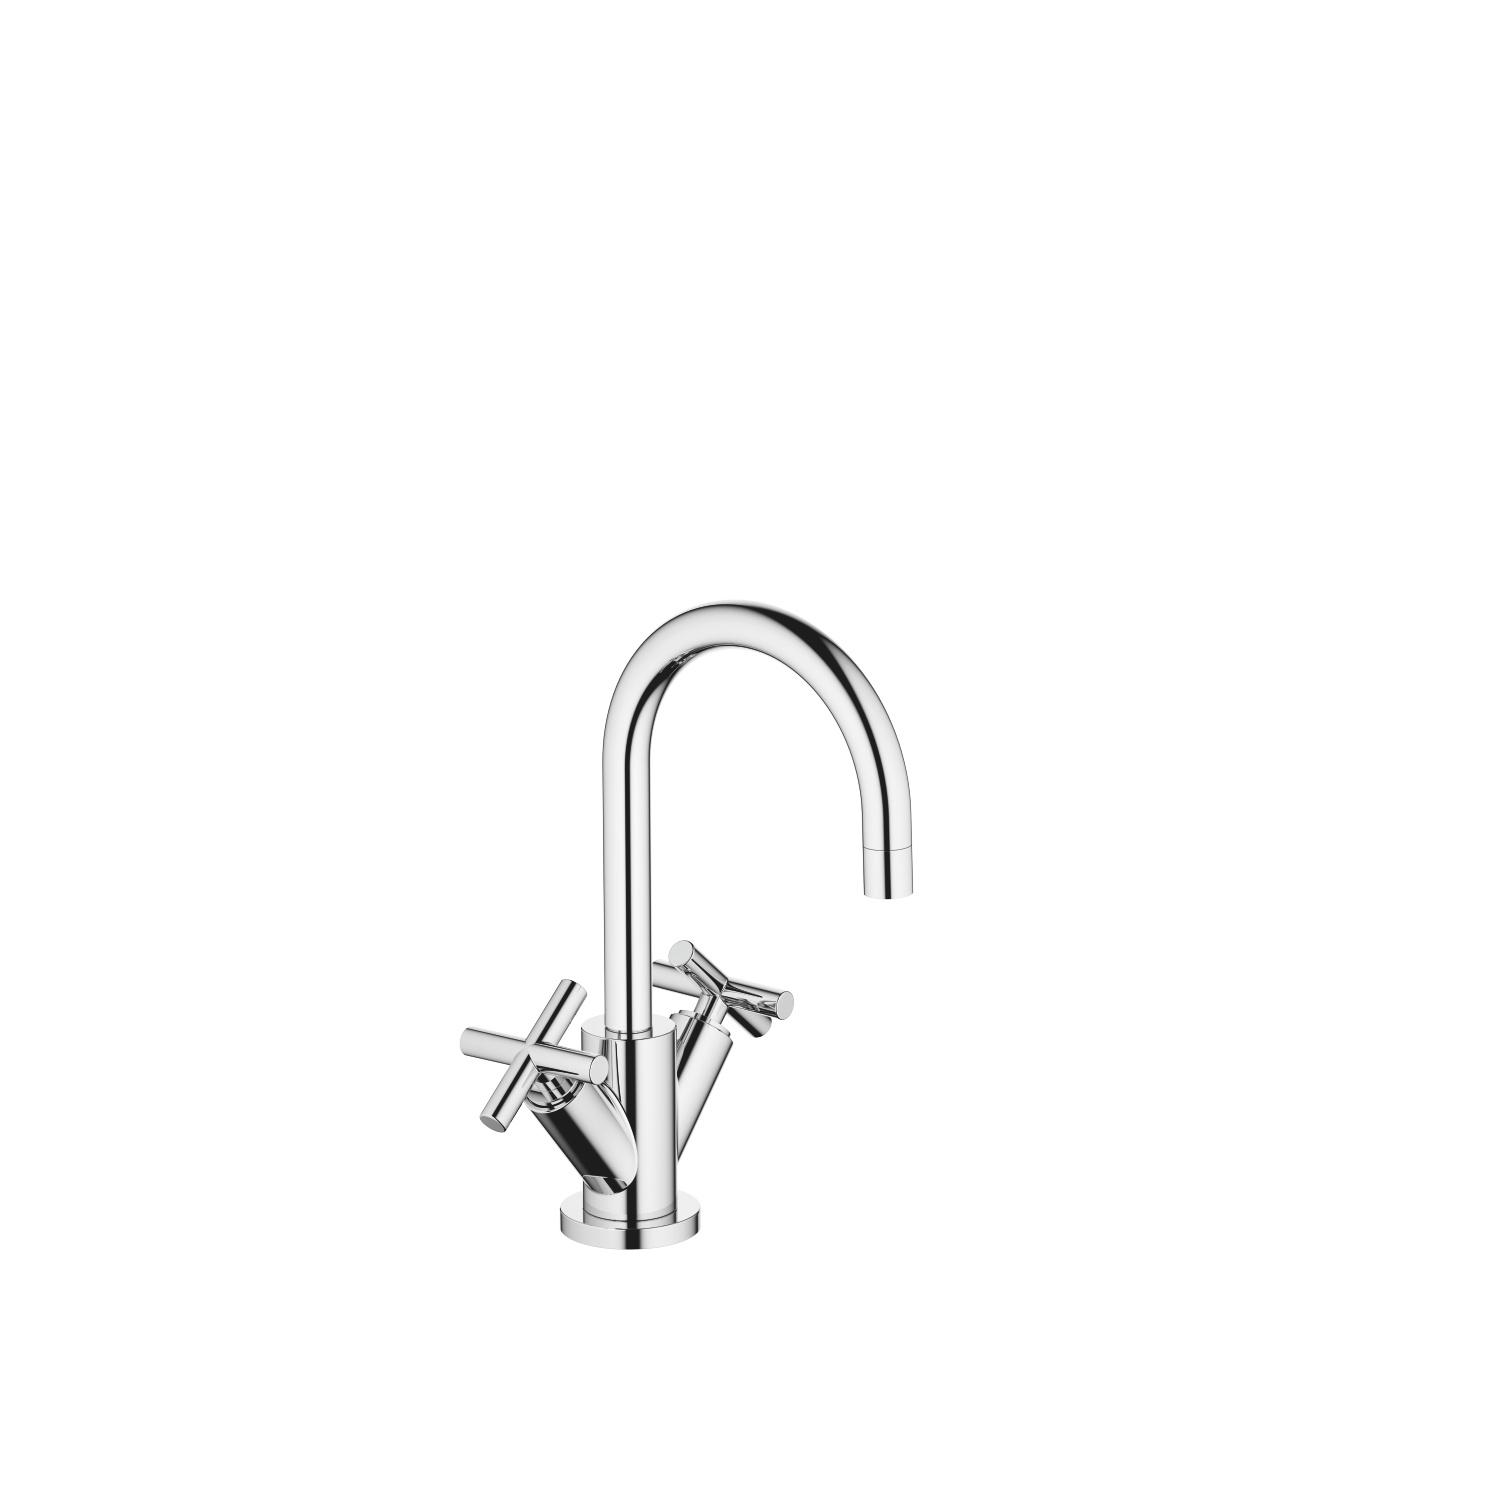 Single-hole basin mixer with pop-up waste - polished chrome - 22 512 892-00